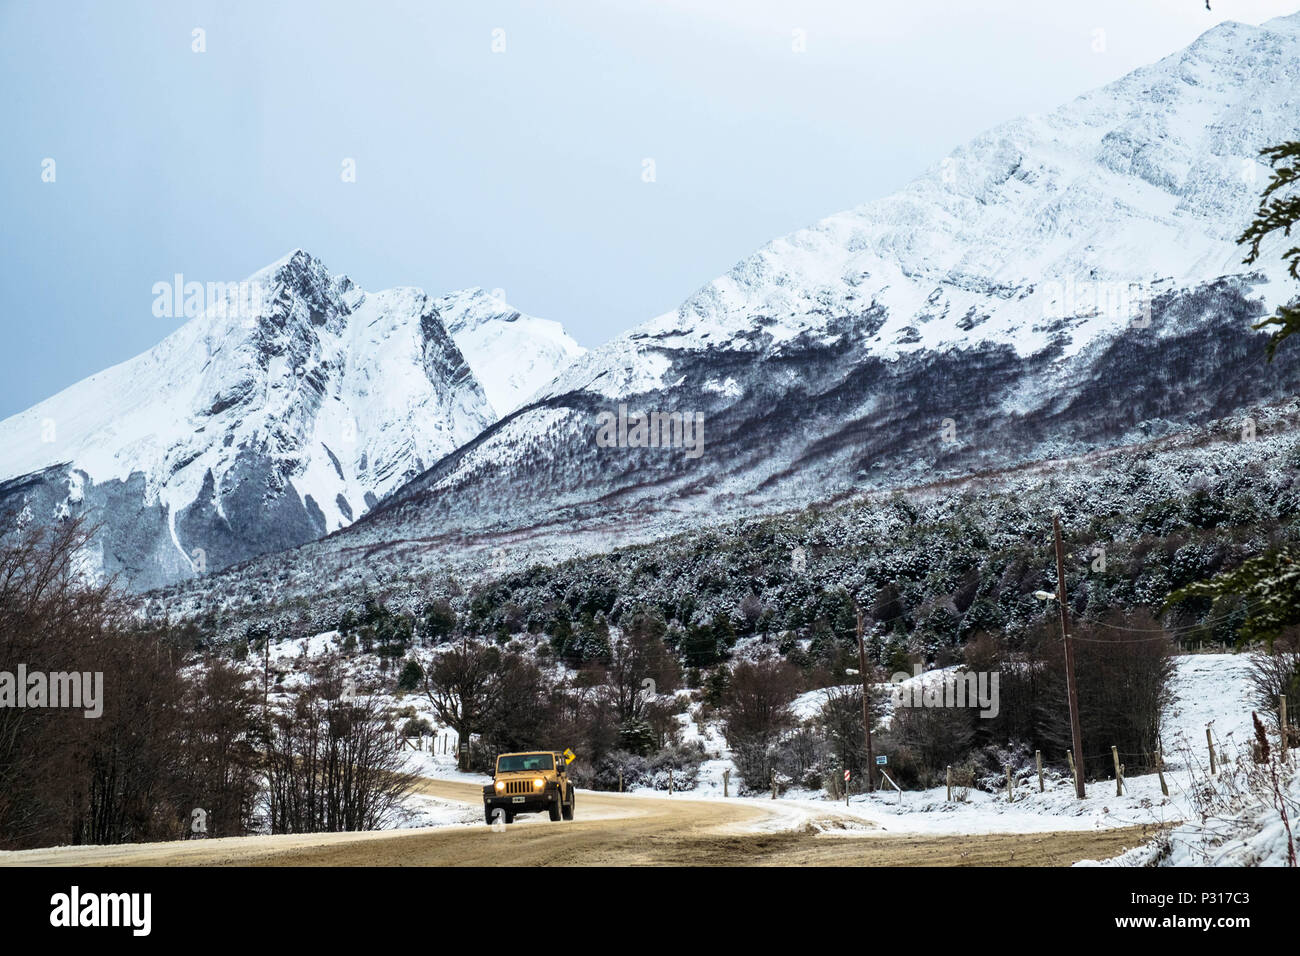 An off-road vehicle drives on the road in between the national park of Tierra del Fuego and Ushuaia. Recent snow gives magic to the landscape. Stock Photo